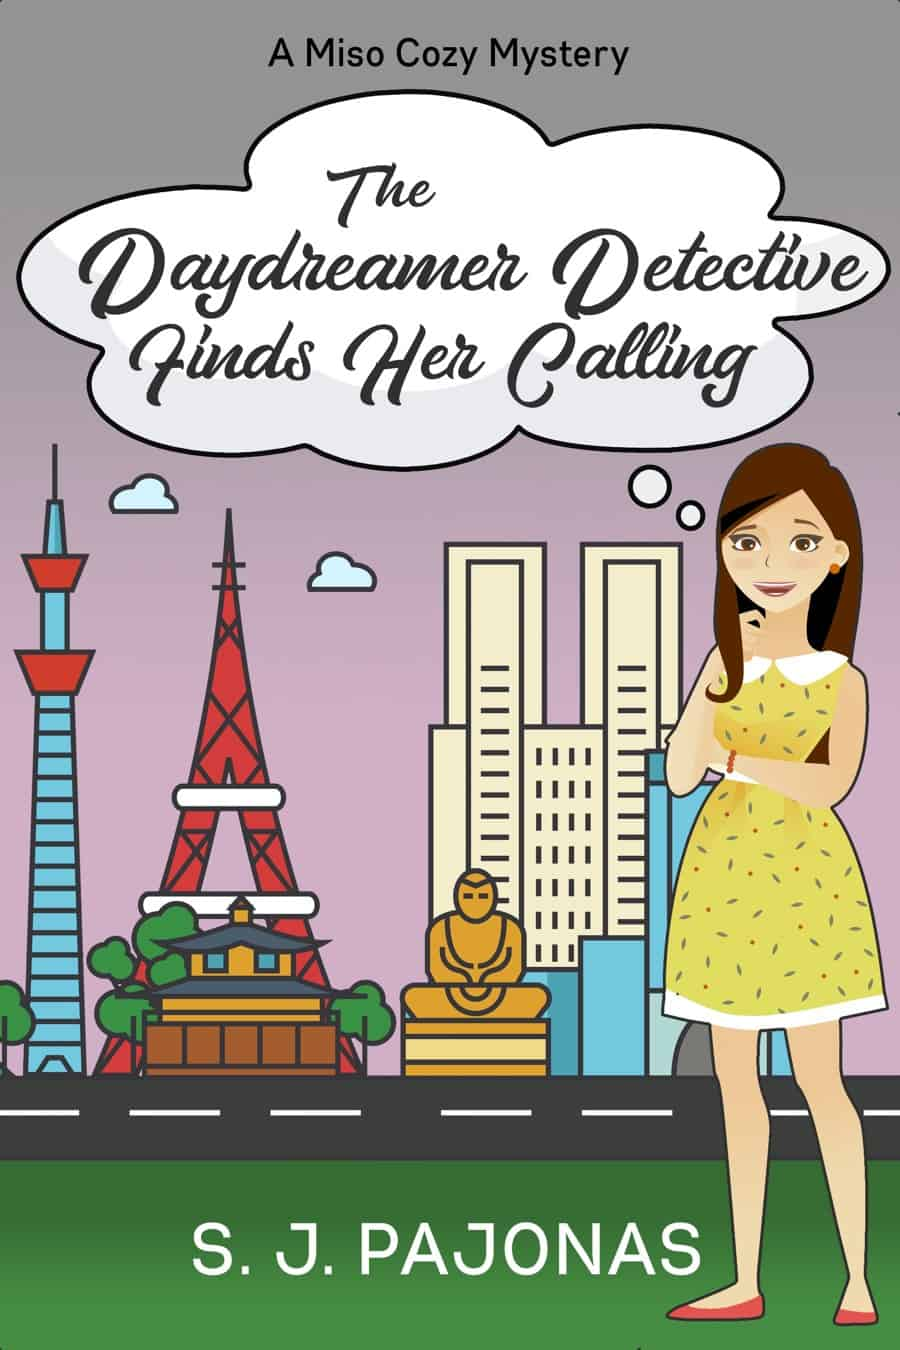 Check out this excerpt for THE DAYDREAMER DETECTIVE FINDS HER CALLING! Mei and Yasahiro are building their new house and there's plenty to worry about... including a little mystery of what's happening on the property.